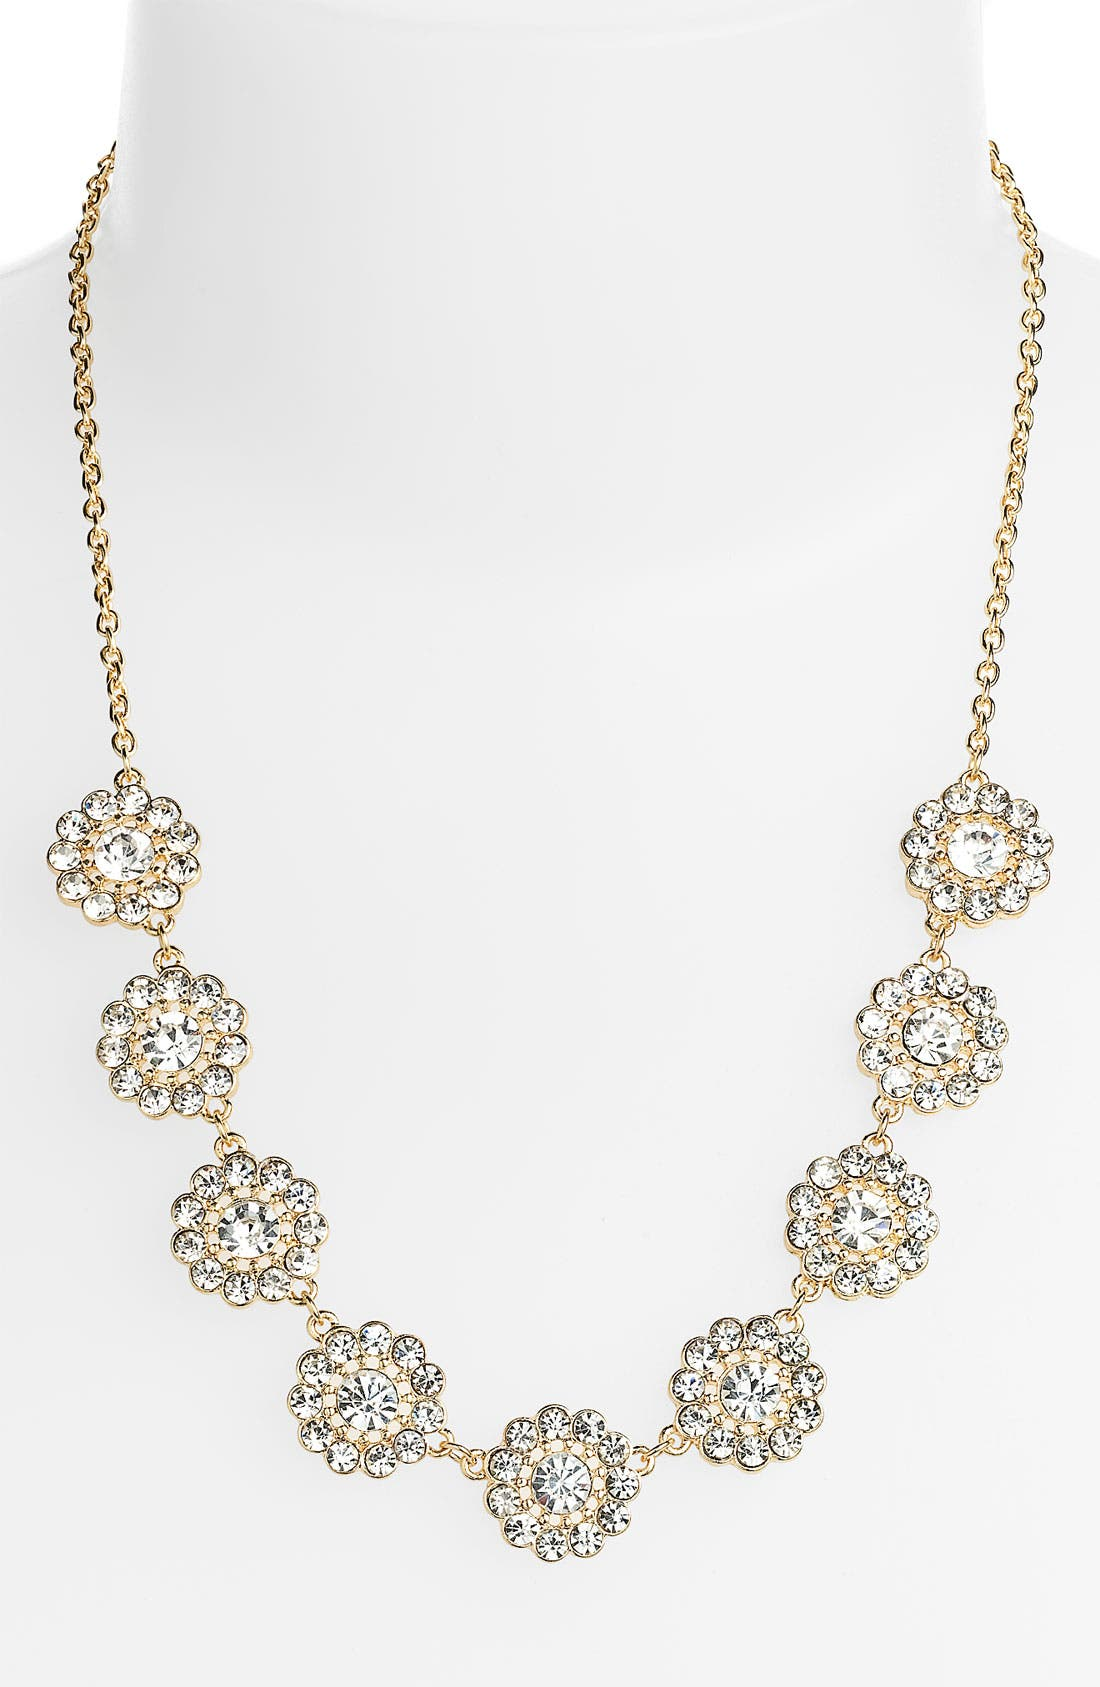 Alternate Image 1 Selected - Carole Floral Rhinestone Necklace